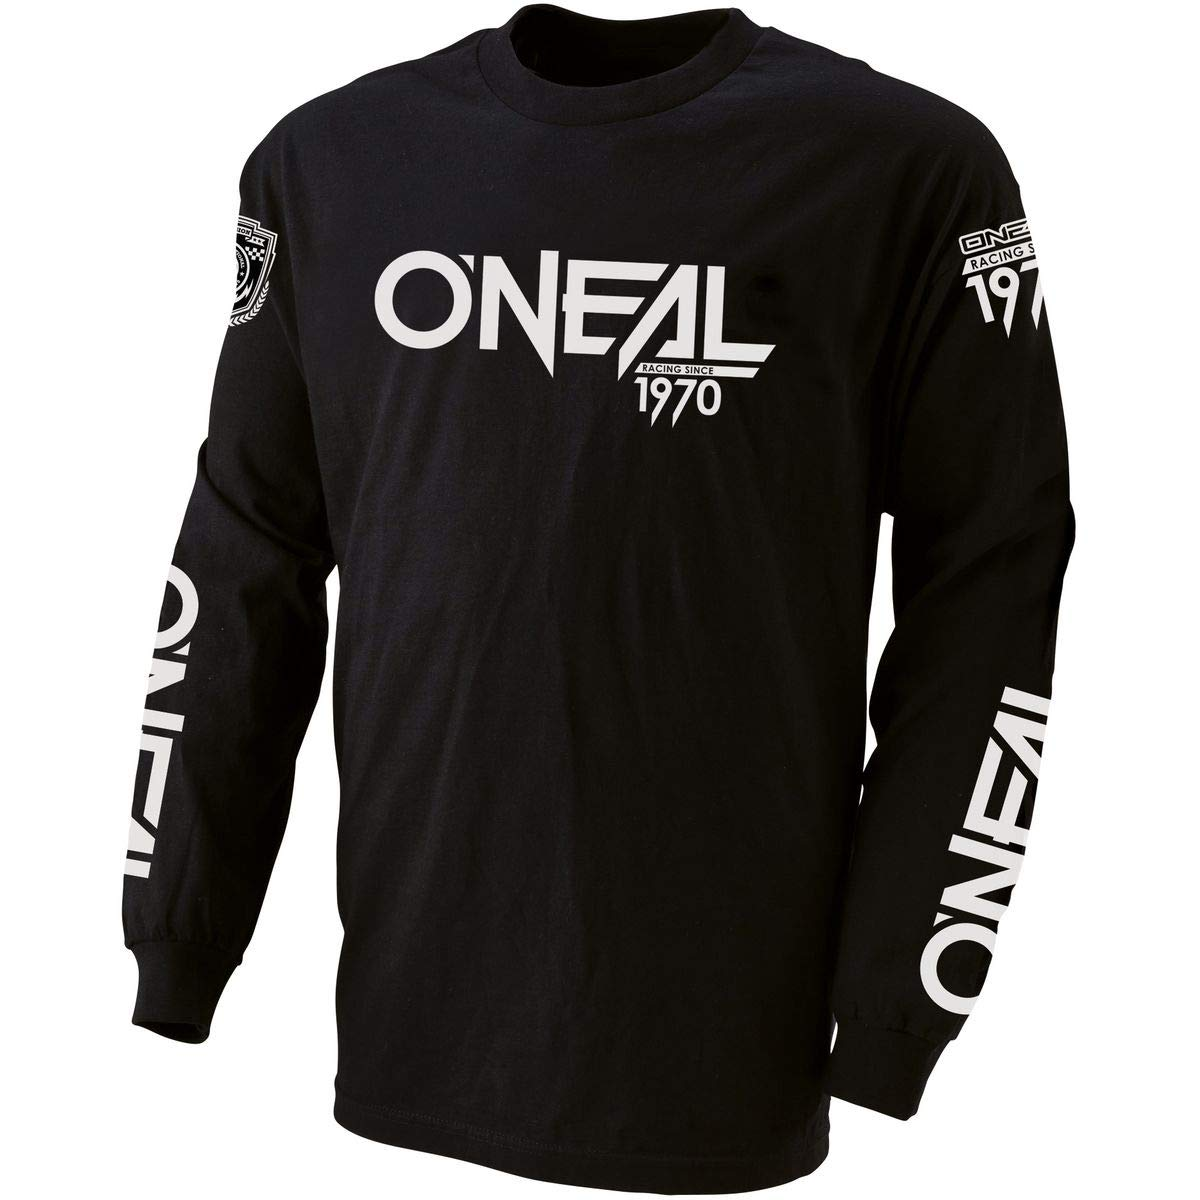 O/'Neal 0085-012 ONeal Demolition Unisex-Mens Jersey Black, Small